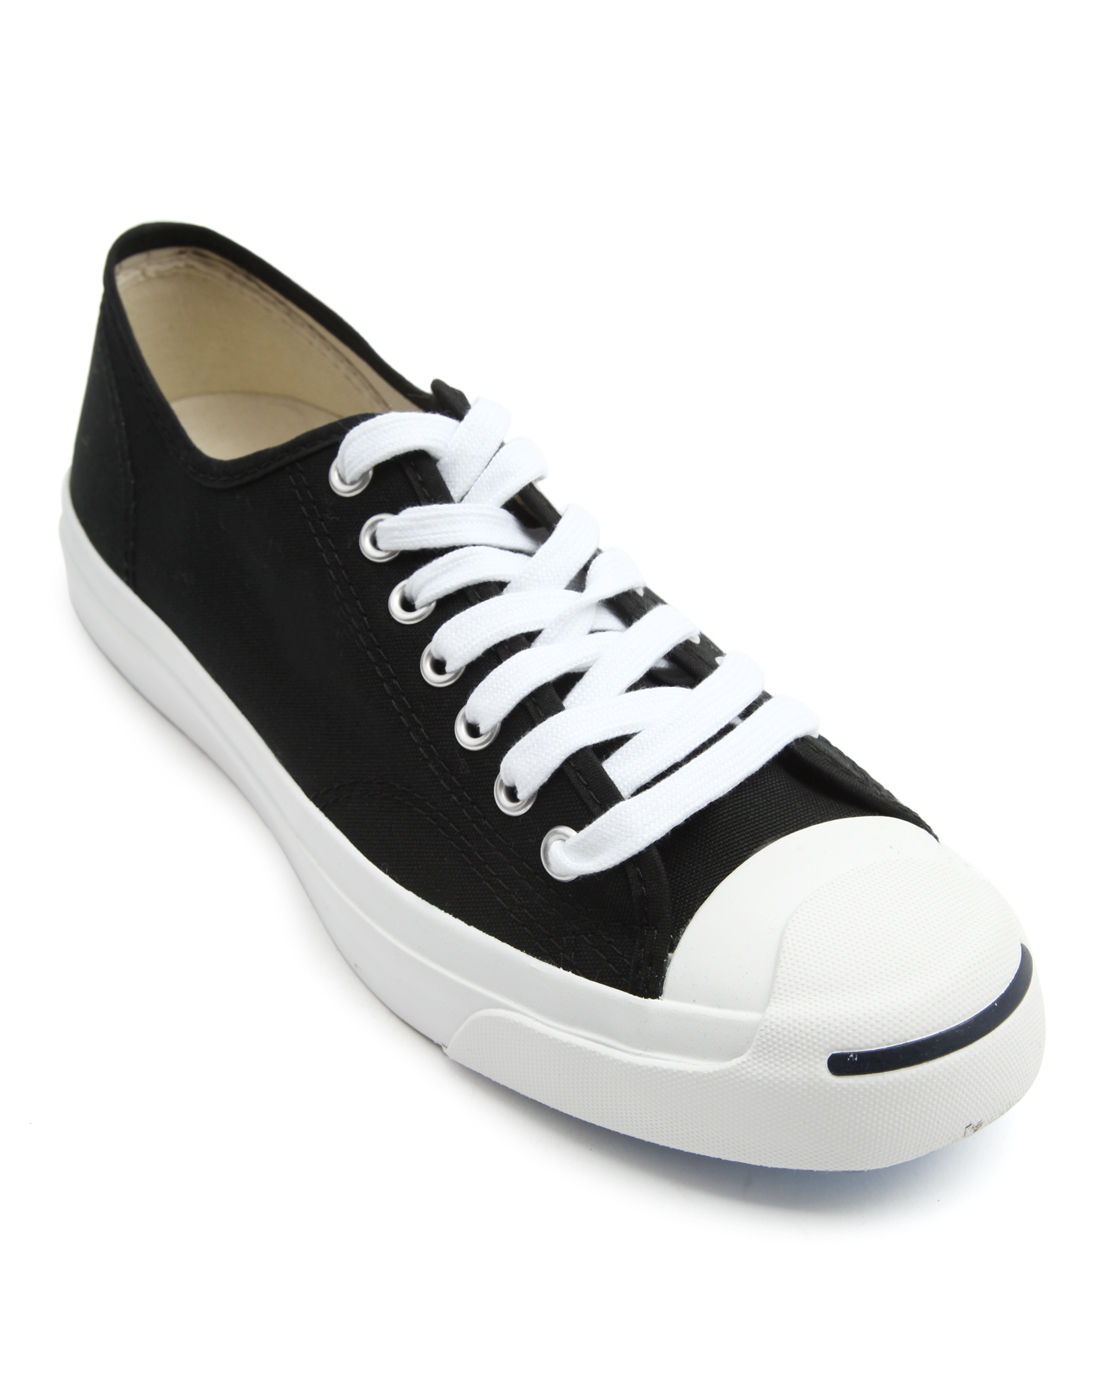 converse purcell black and white ox canvas sneakers